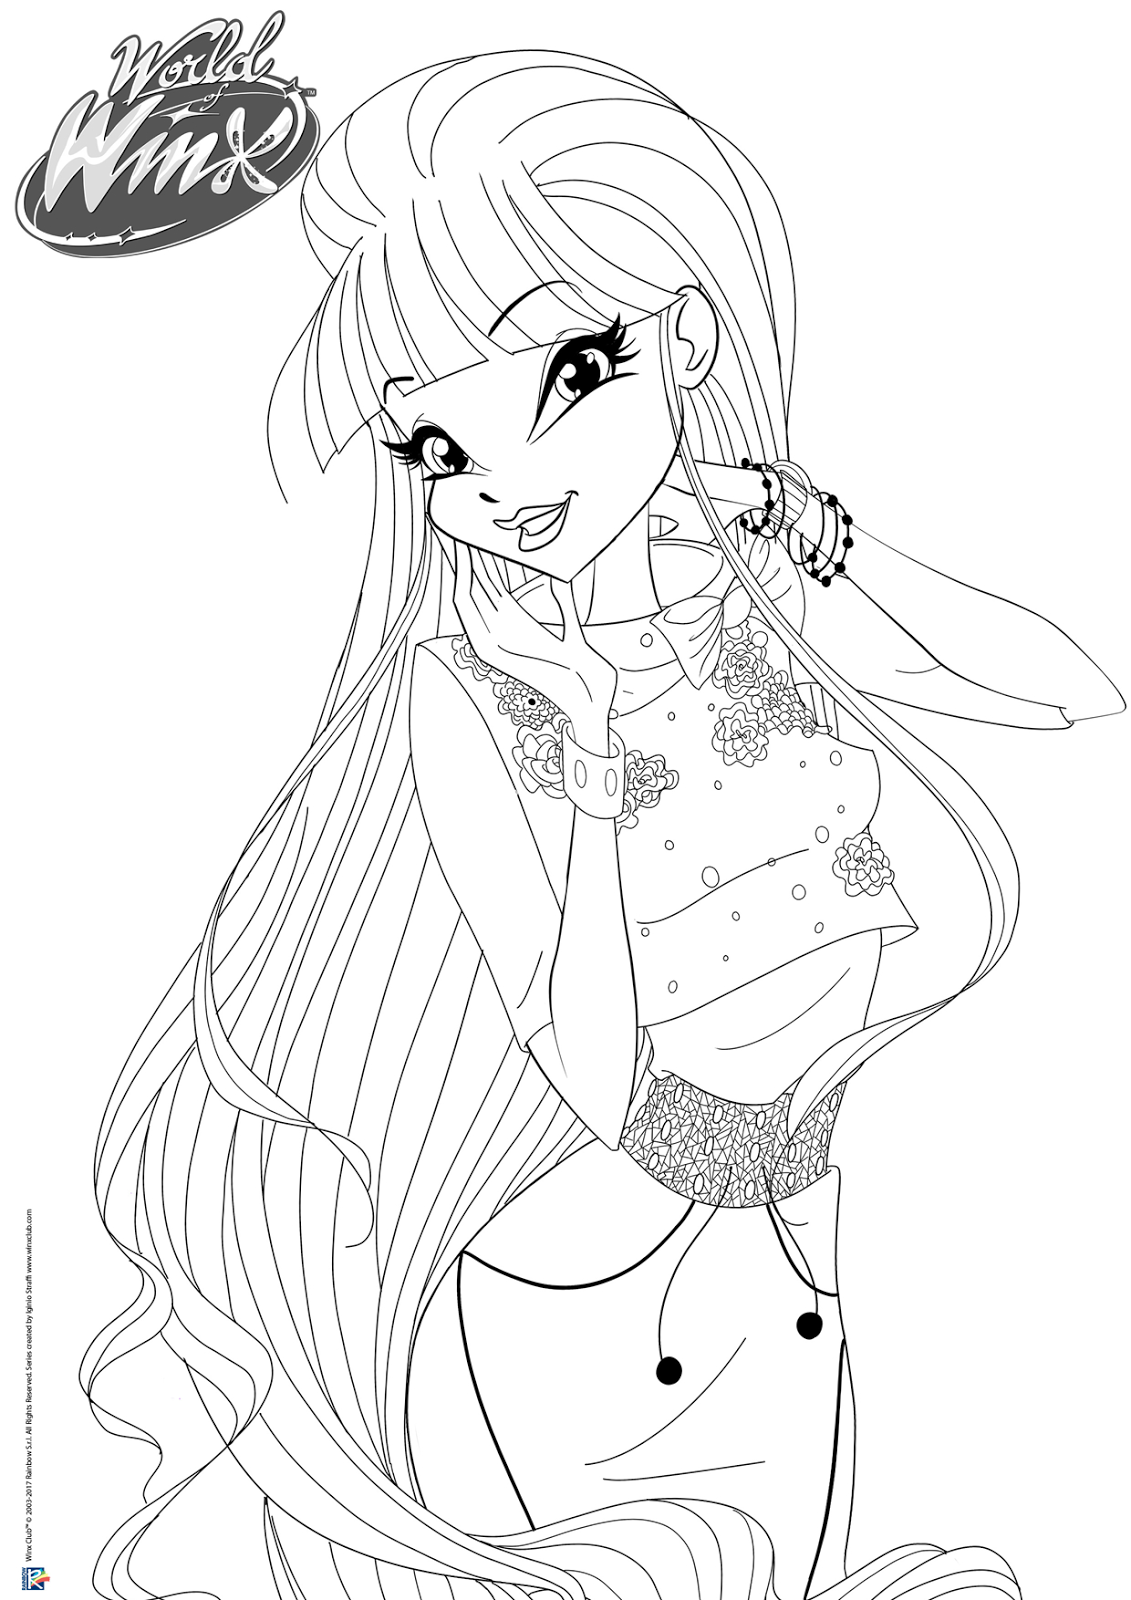 World of winx coloring pages casual outfit for Winx coloring pages online